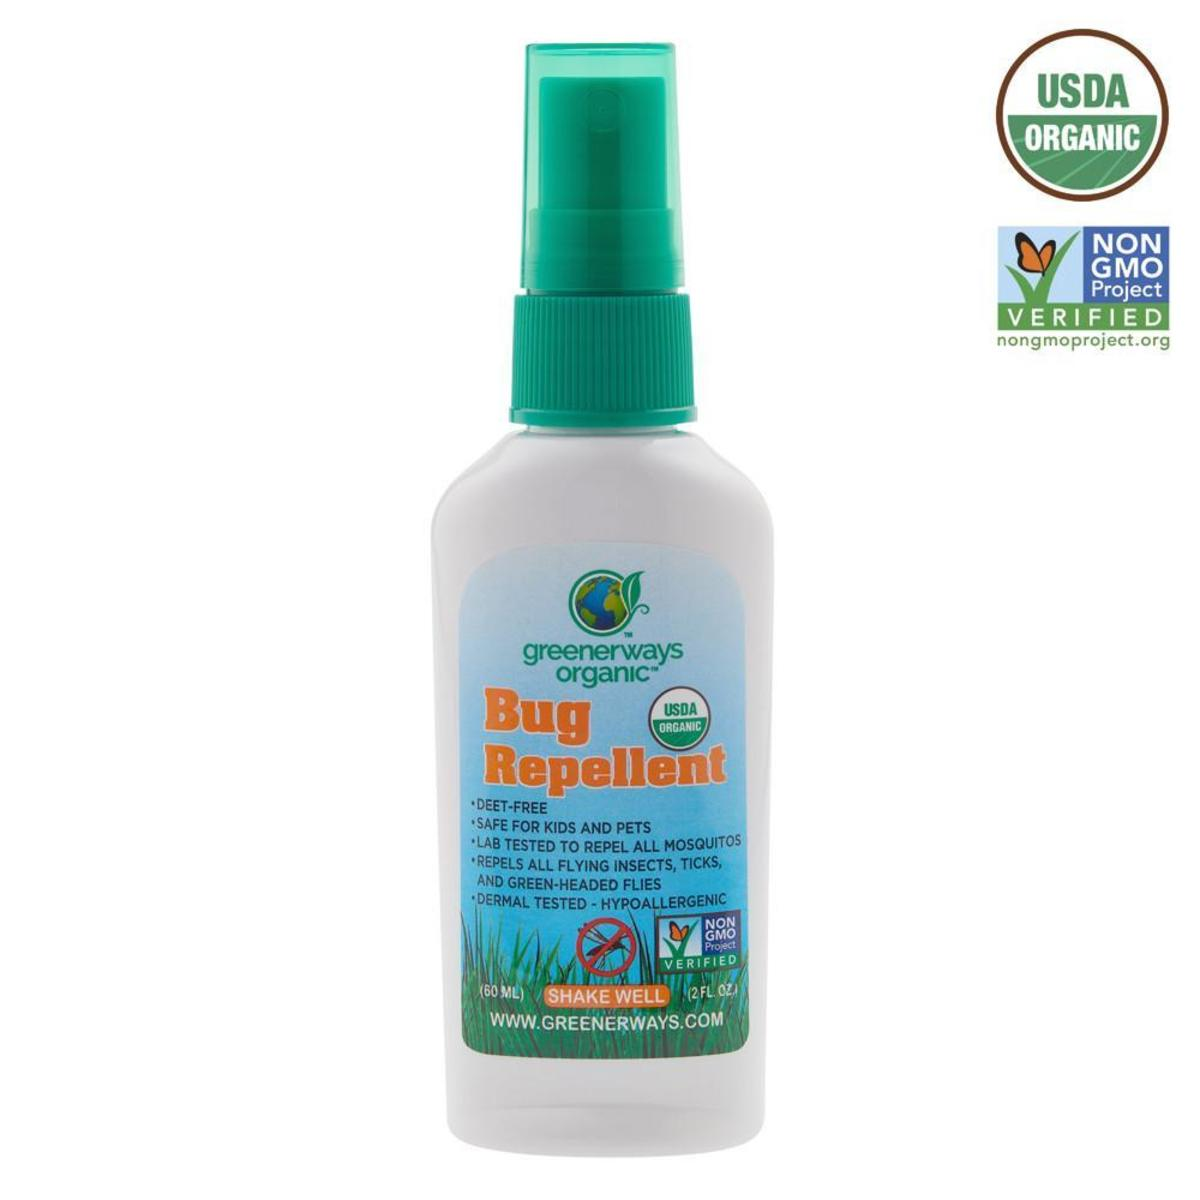 Greenerways Organic Bug Spray 60ml